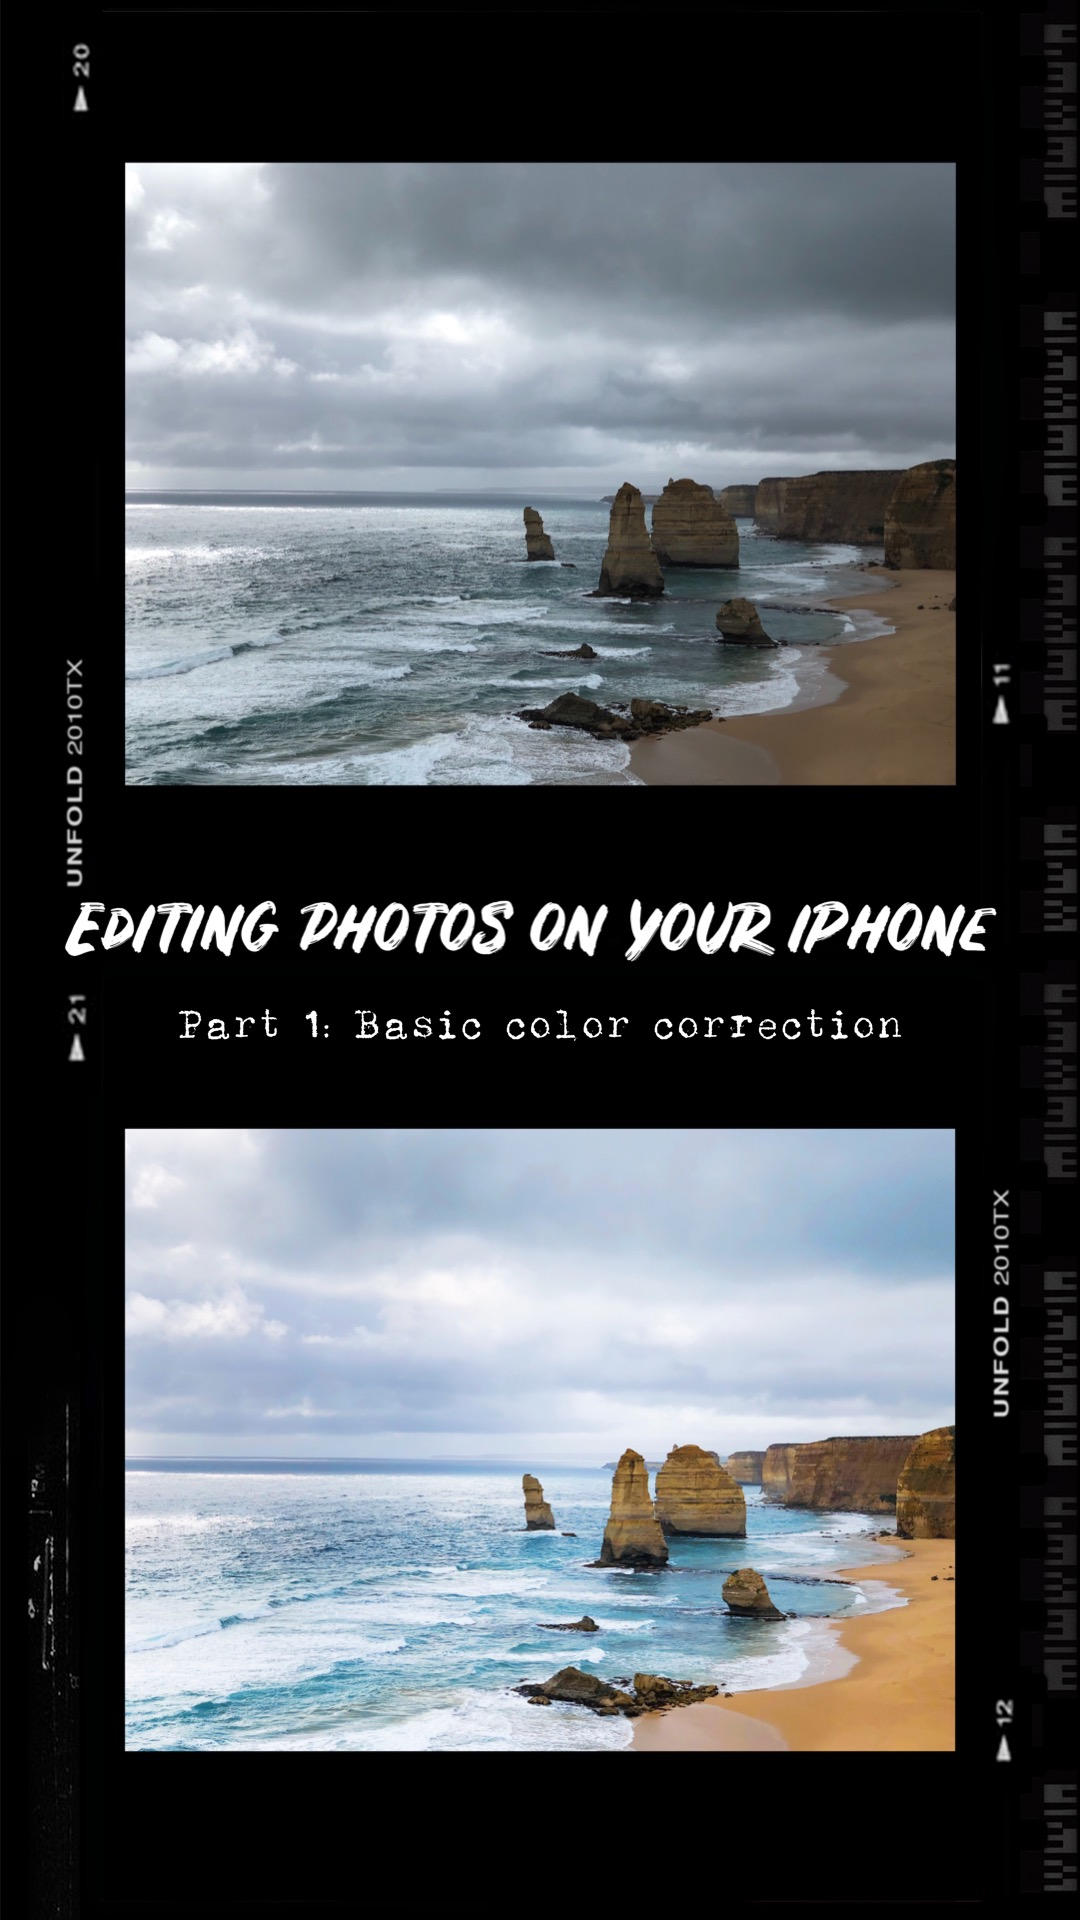 Editing photos on your iPhone — Part 1: Basic color correction